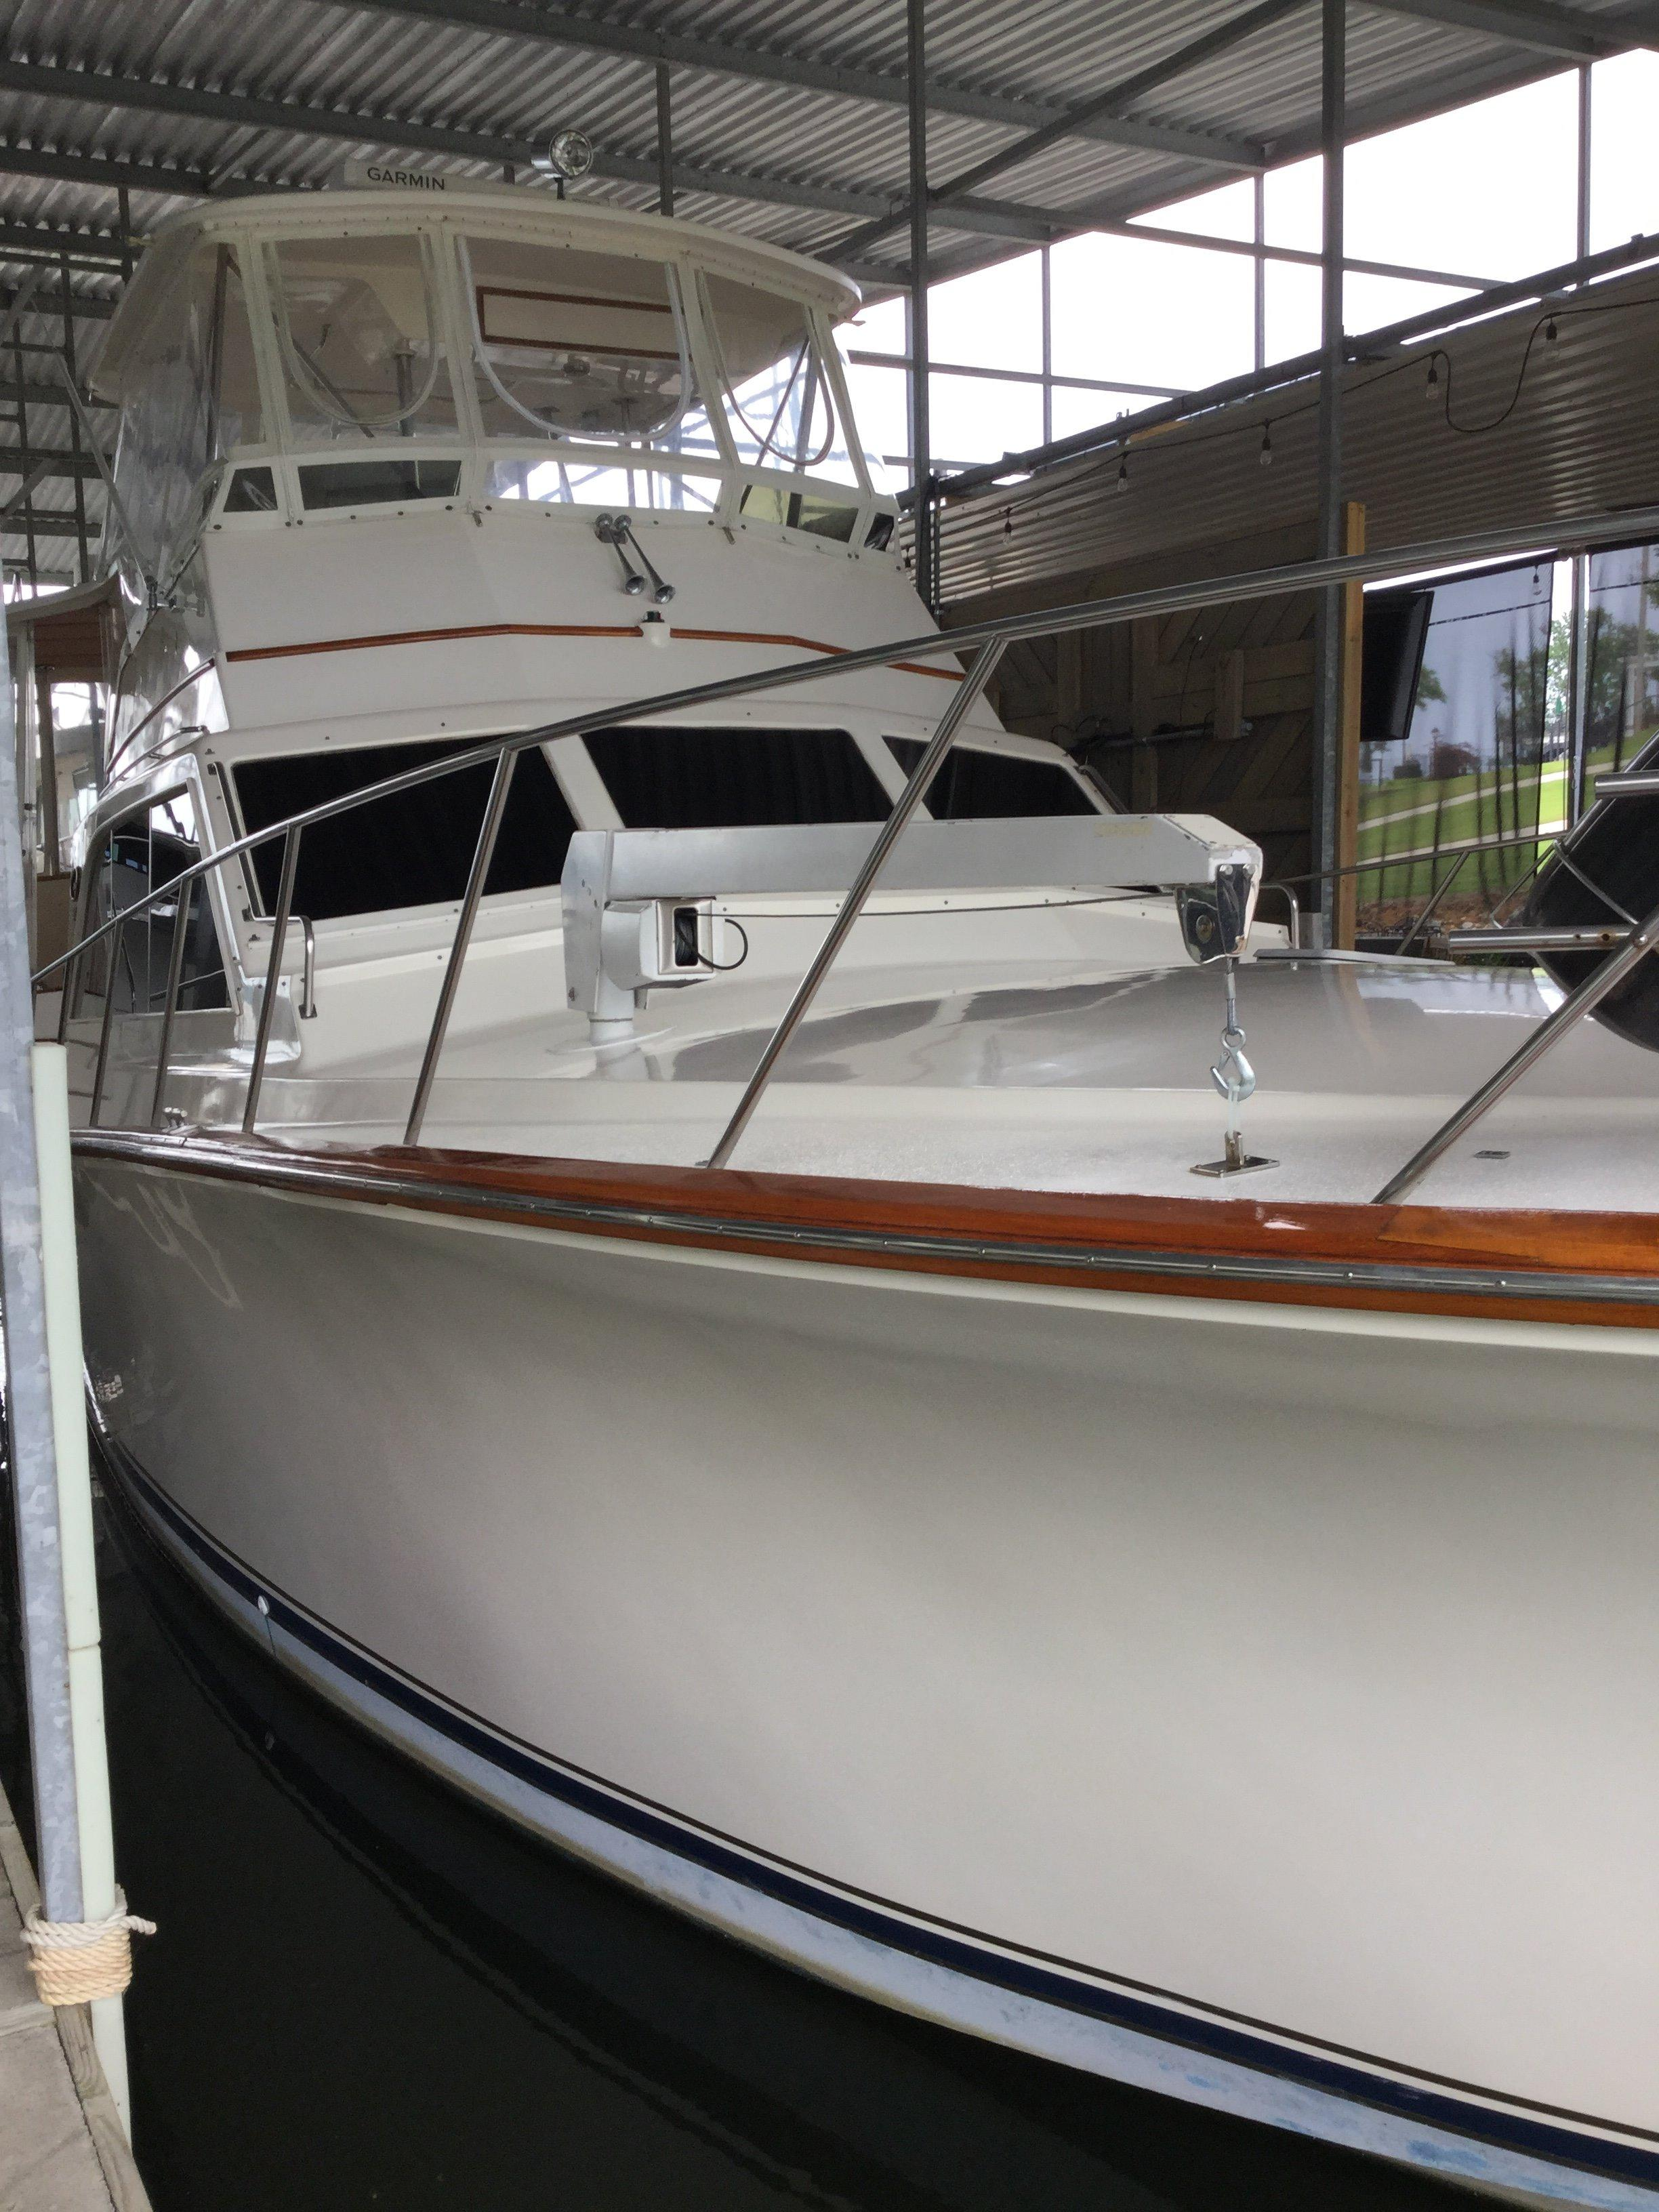 Fully Enclosed Aft Deck With Hardtop